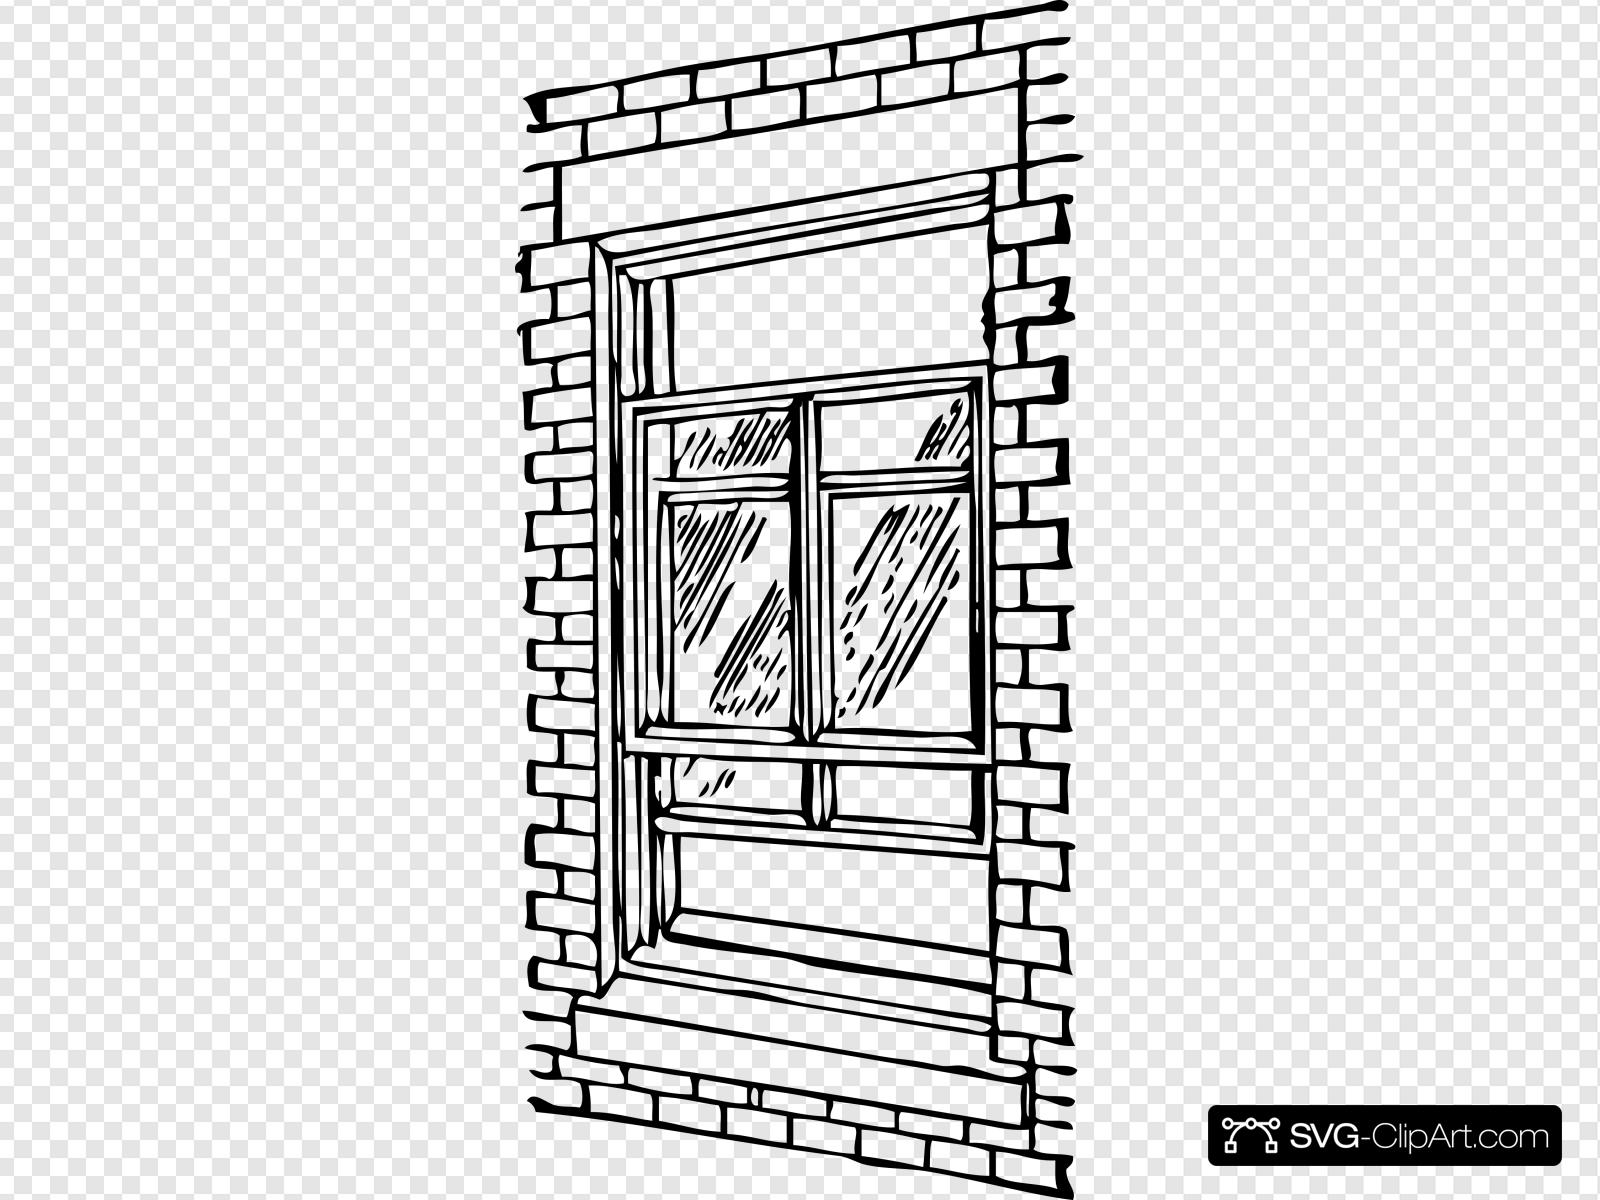 Double Hung Window Clip art, Icon and SVG.